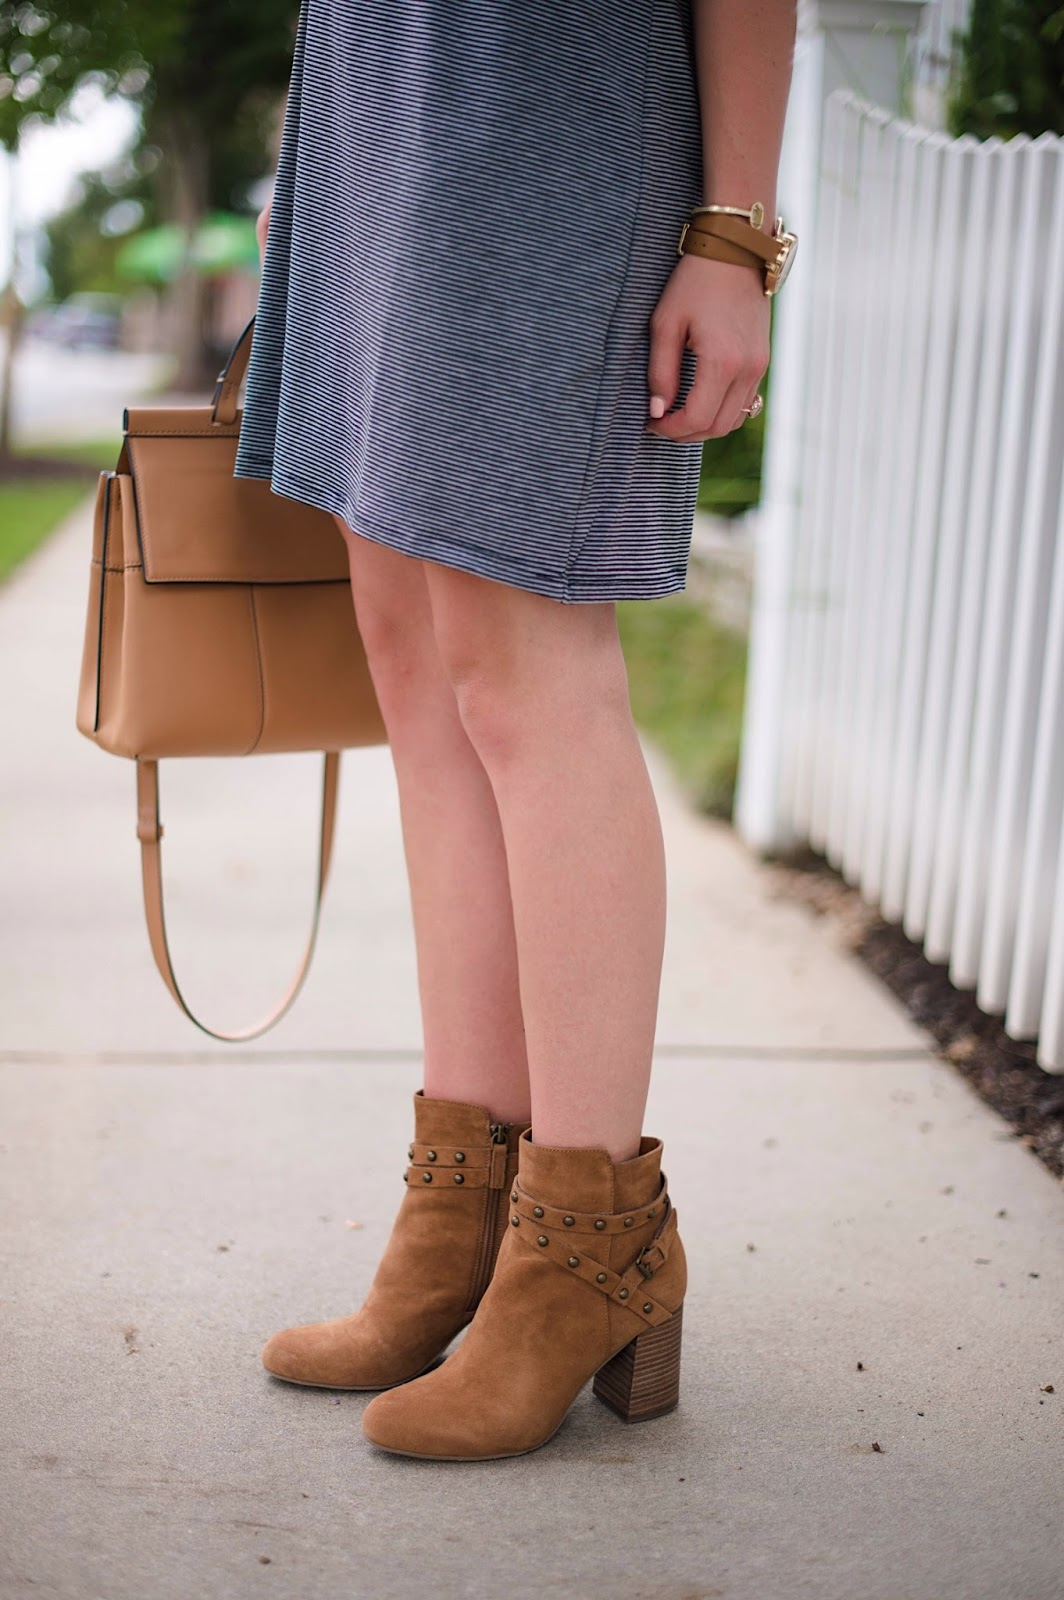 Brown Booties - Click through to see more on Something Delightful Blog!